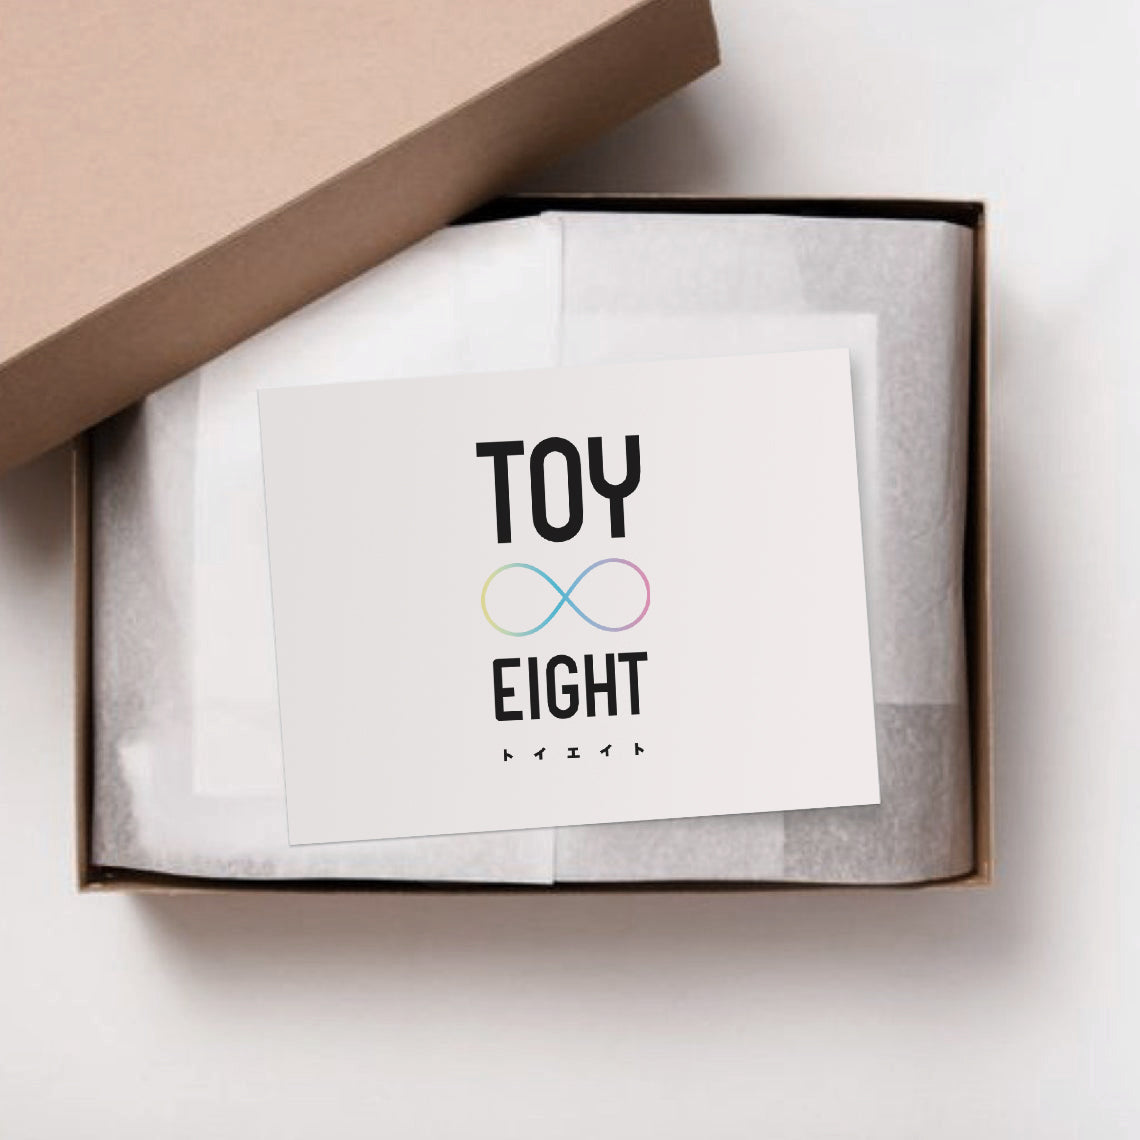 TOY8 BOX Subscription Package For 3-5 Years Old